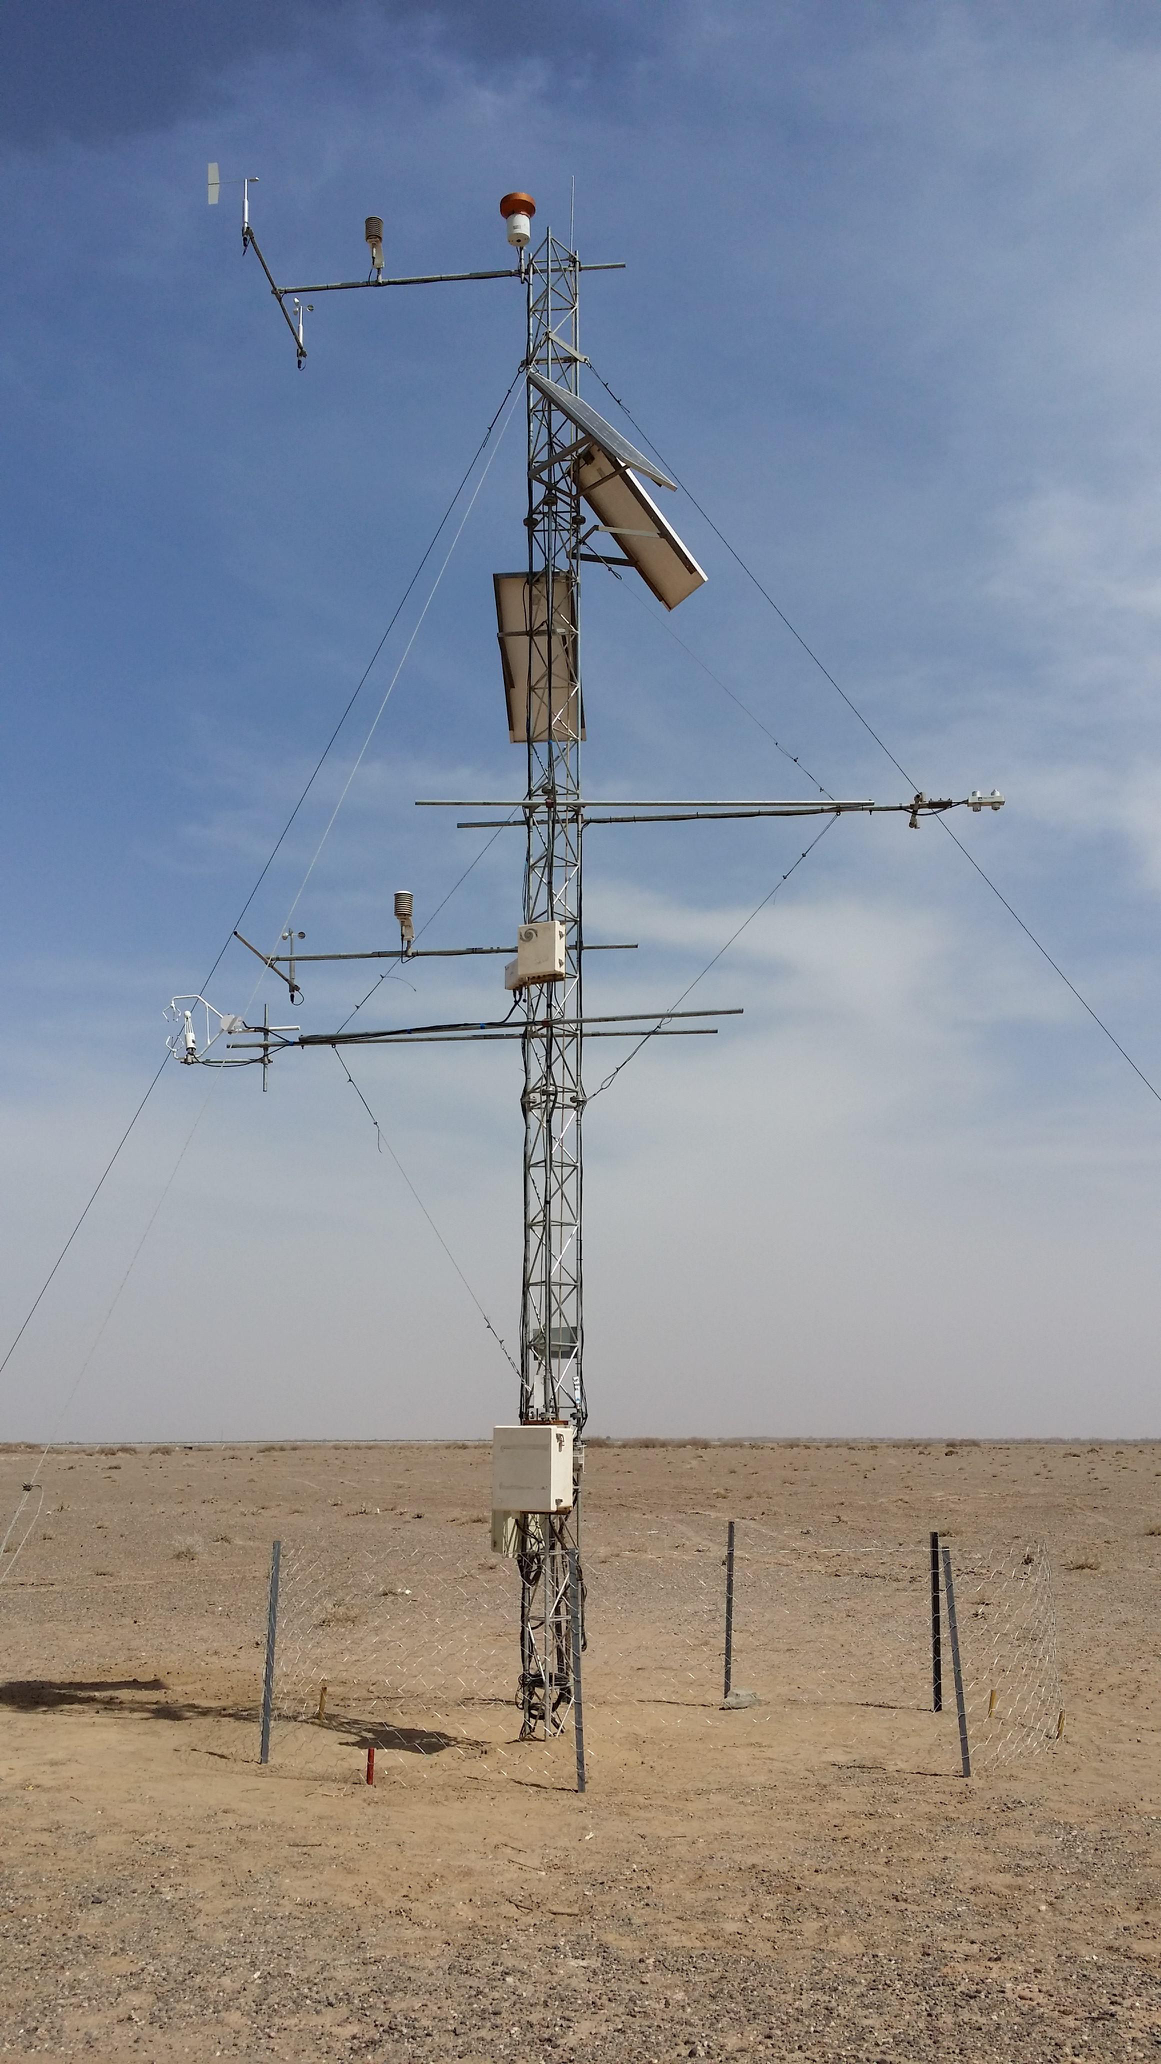 Qilian Mountains integrated observatory network: Dataset of Heihe integrated observatory network (eddy covariance system of desert station, 2018)